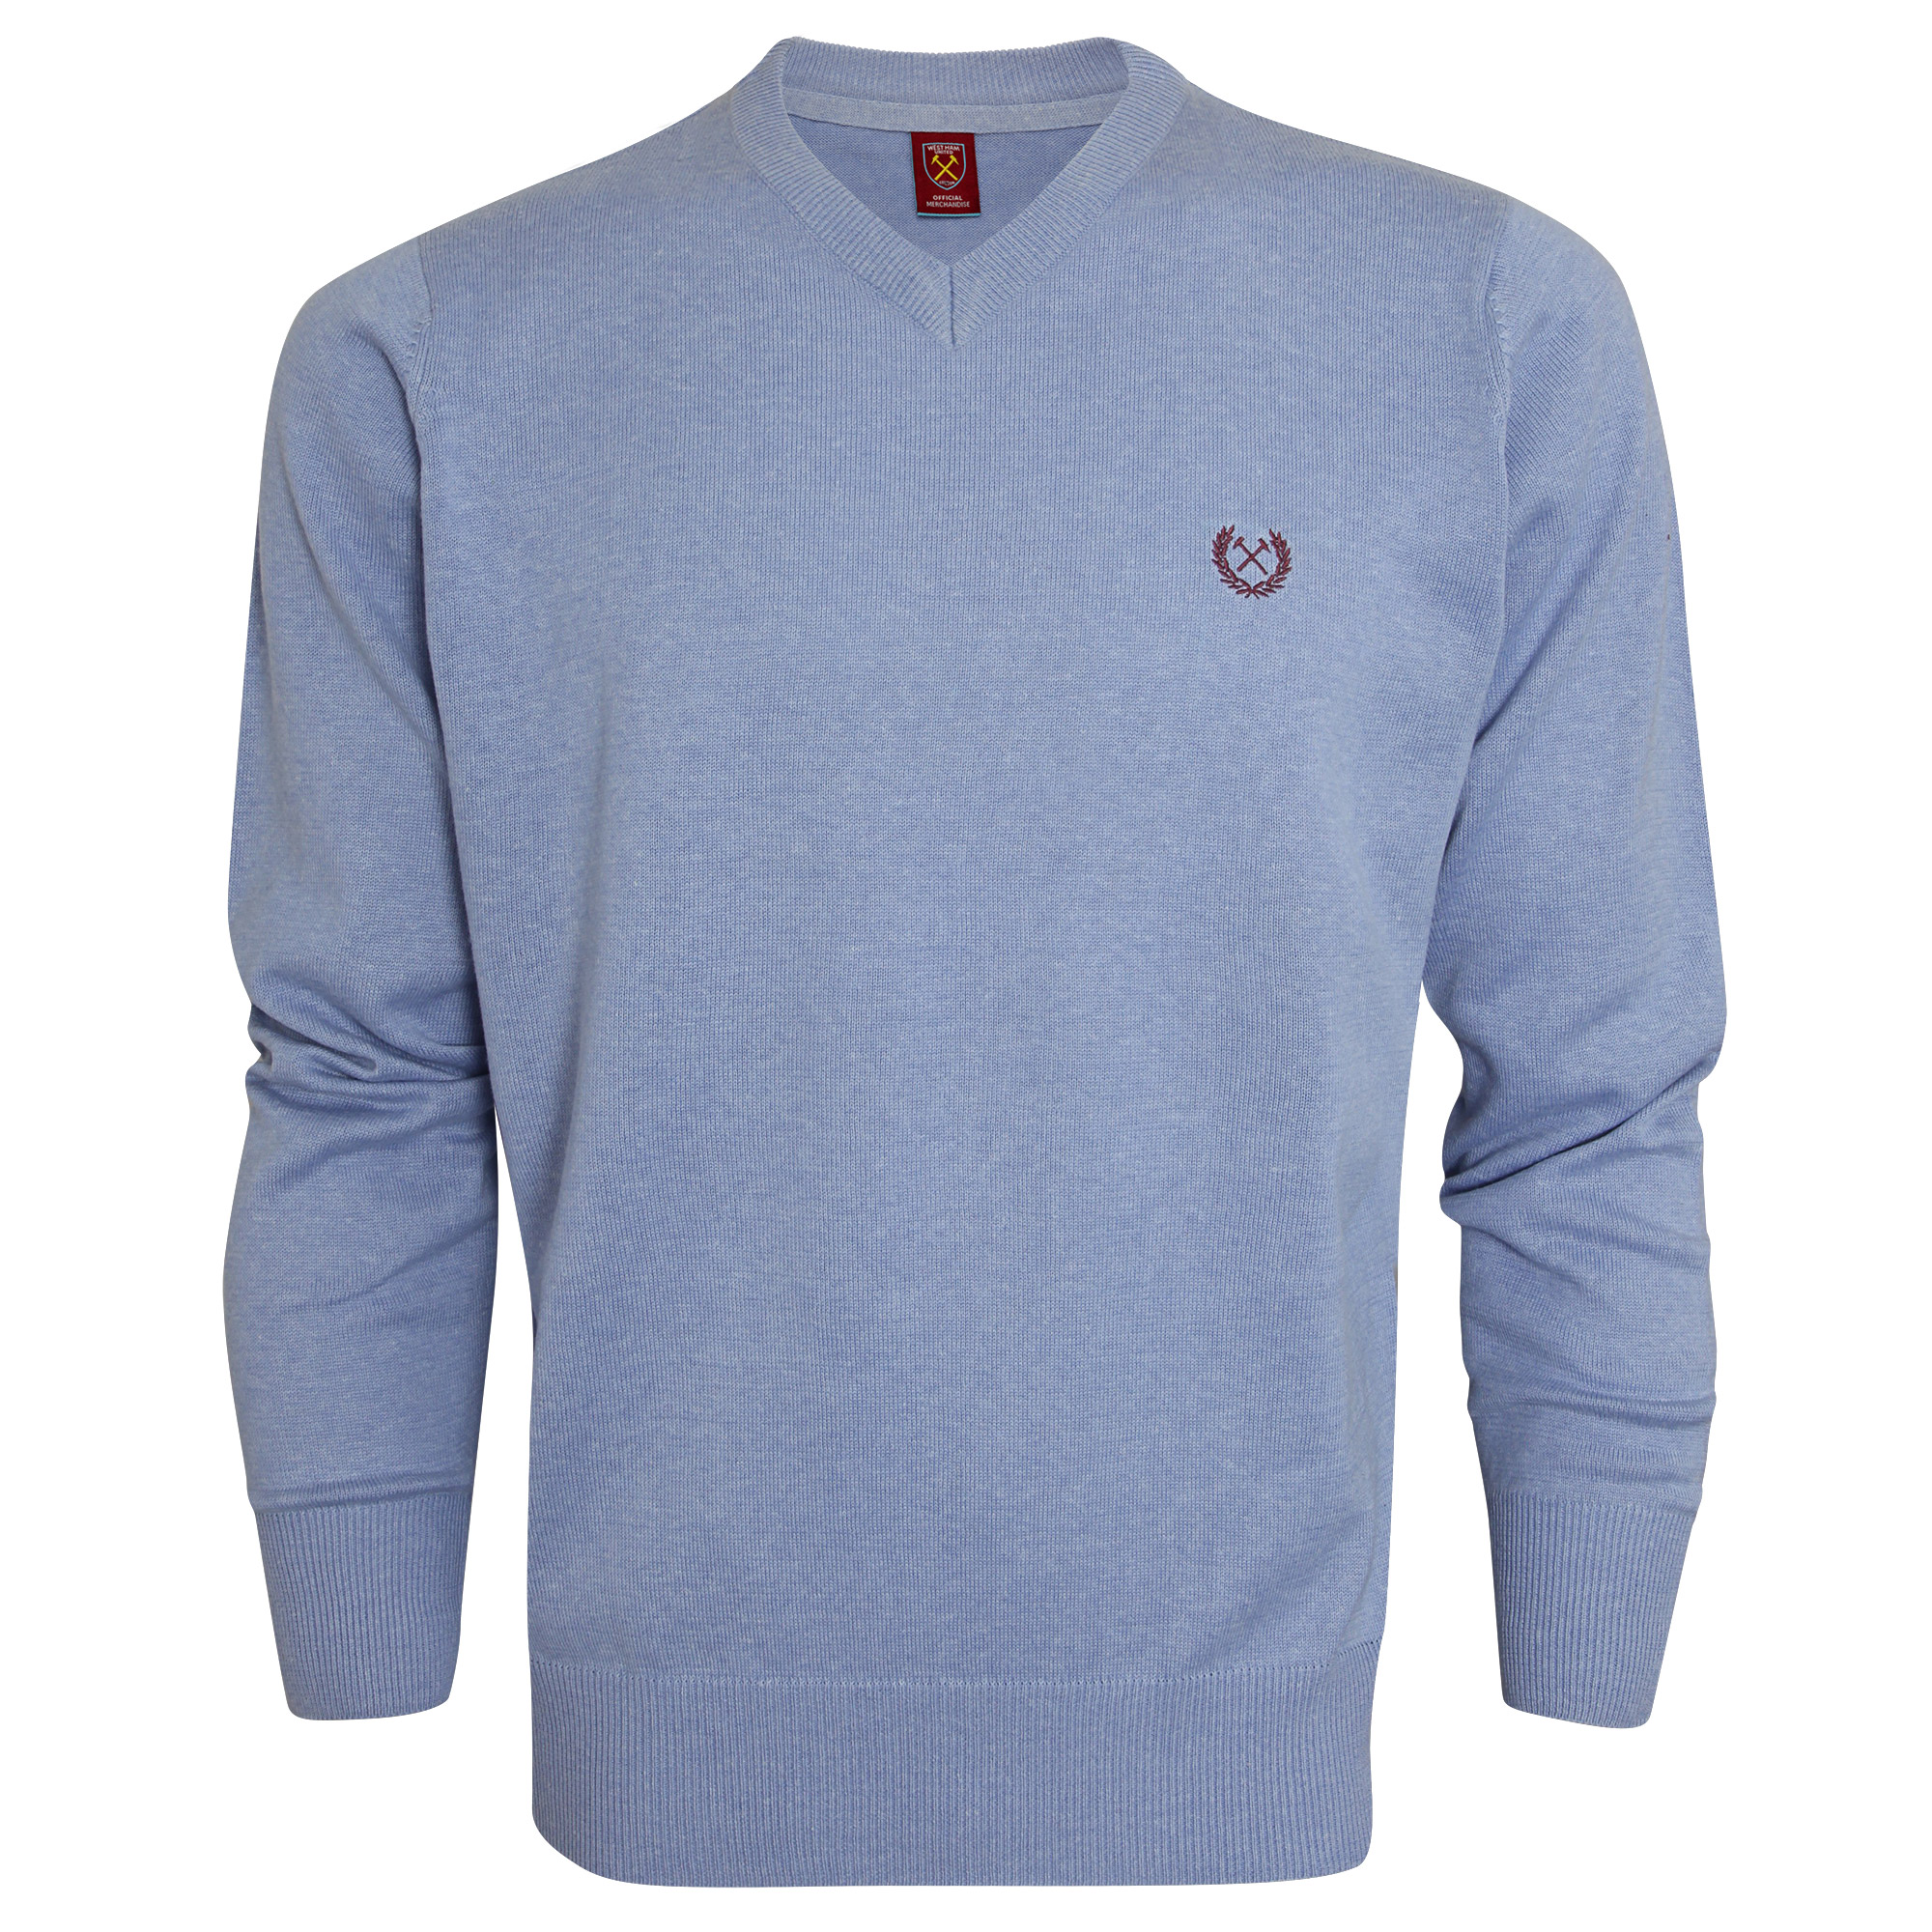 KENTUCKY BLUE V-NECK JUMPER